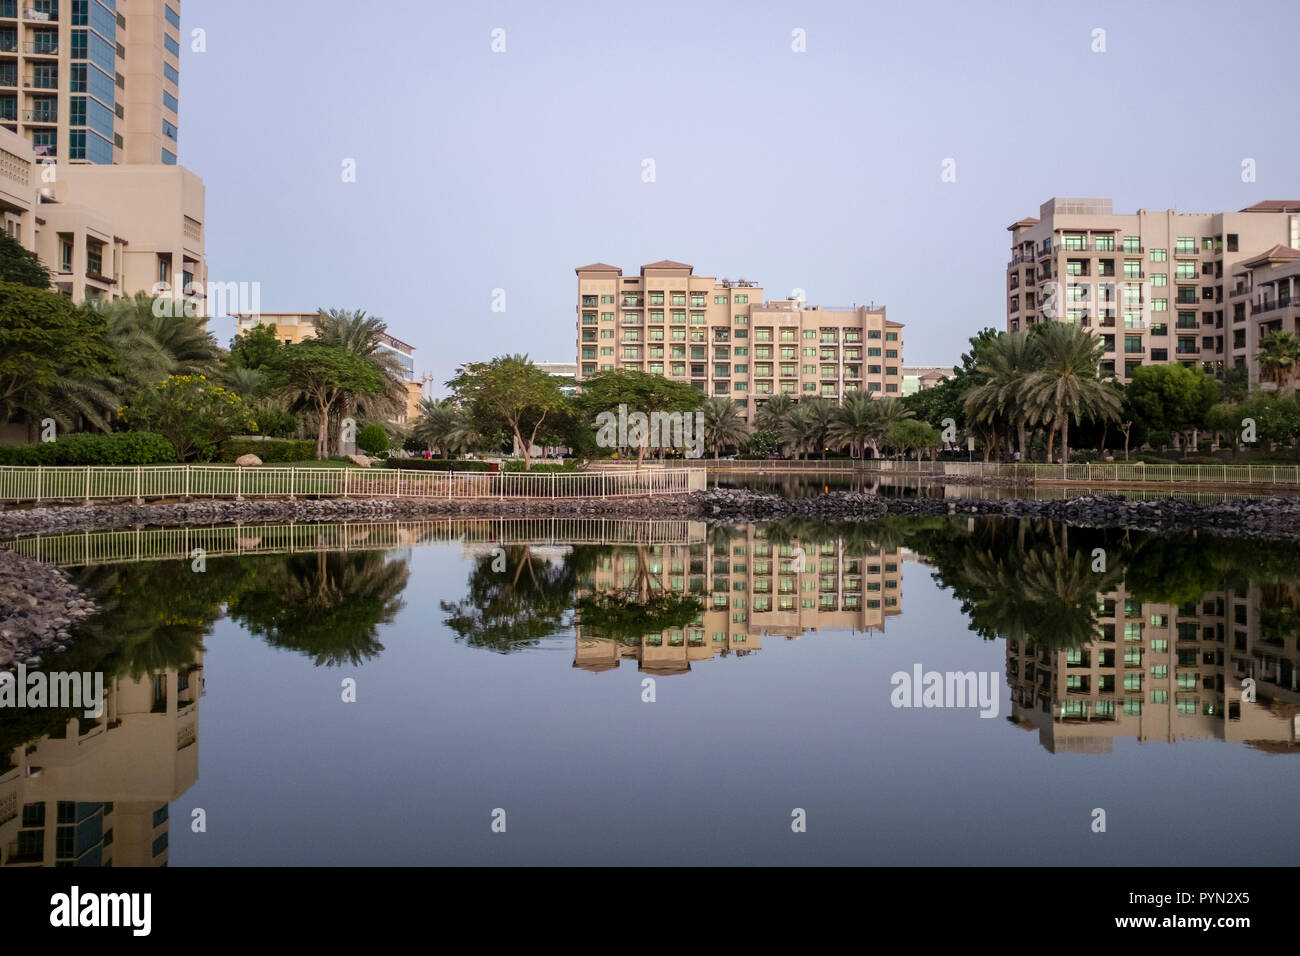 Manmade lake and residential apartments in The Greens